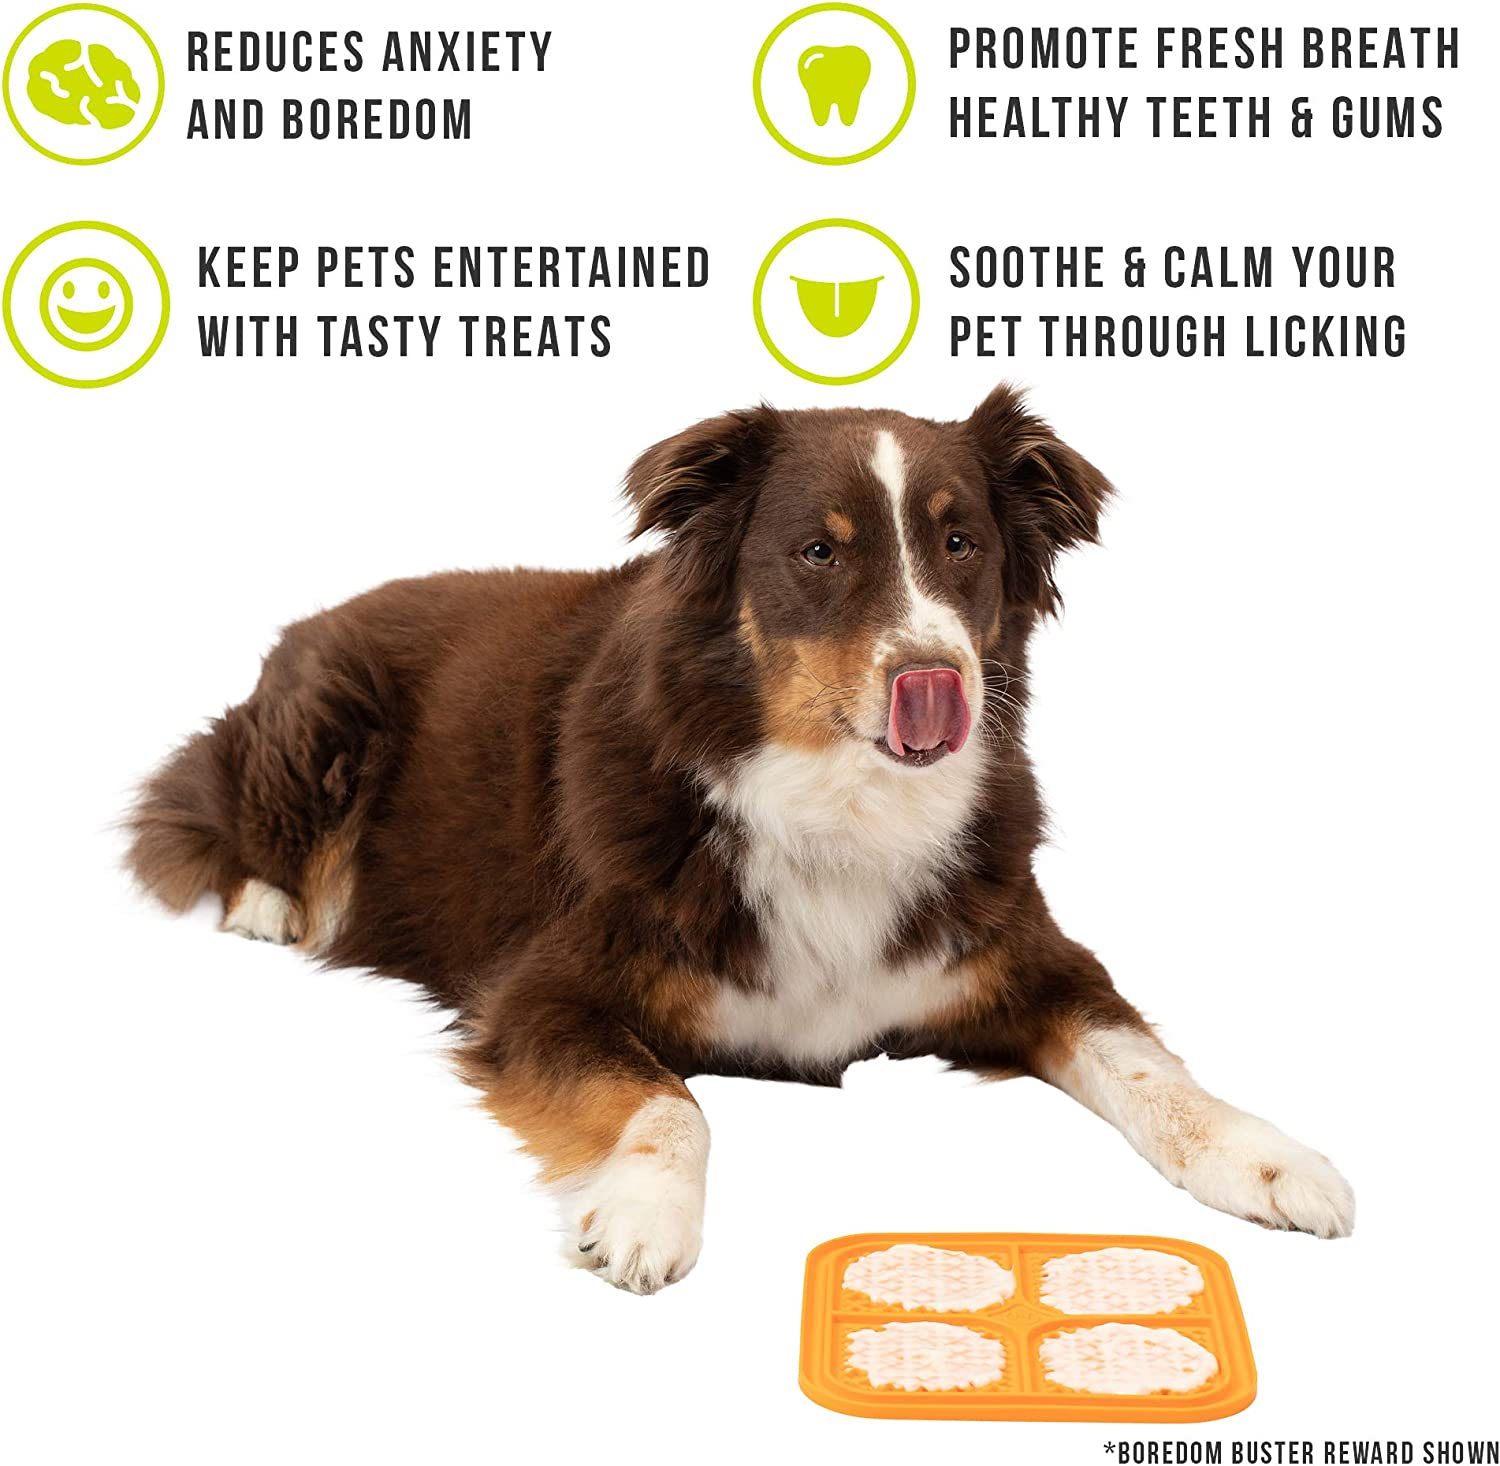 Calming Mat for Anxiety Relief Boredom Buster New Version, IQ Treat Mat | Fun Alternative to Slow Feeder Dog Bowls Hyper Pet Licking Mat for Dogs /& Cats | Made in U.S Just Add Healthy Treats